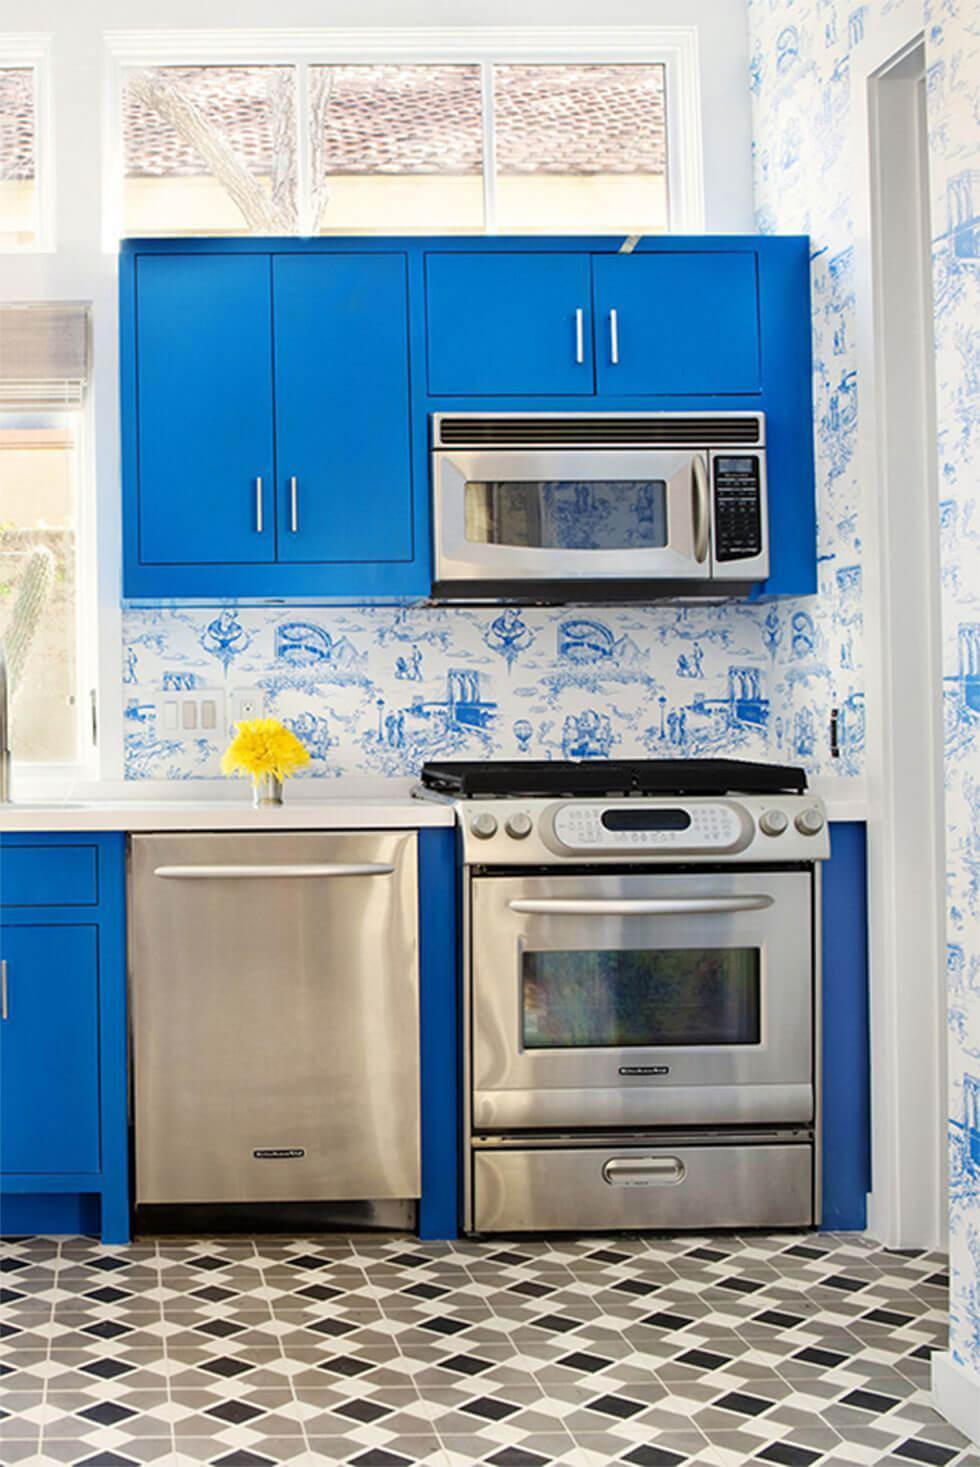 Small kitchen with statement blue cabinets, chrome appliances, geometric tiles and blue floral wallpaper